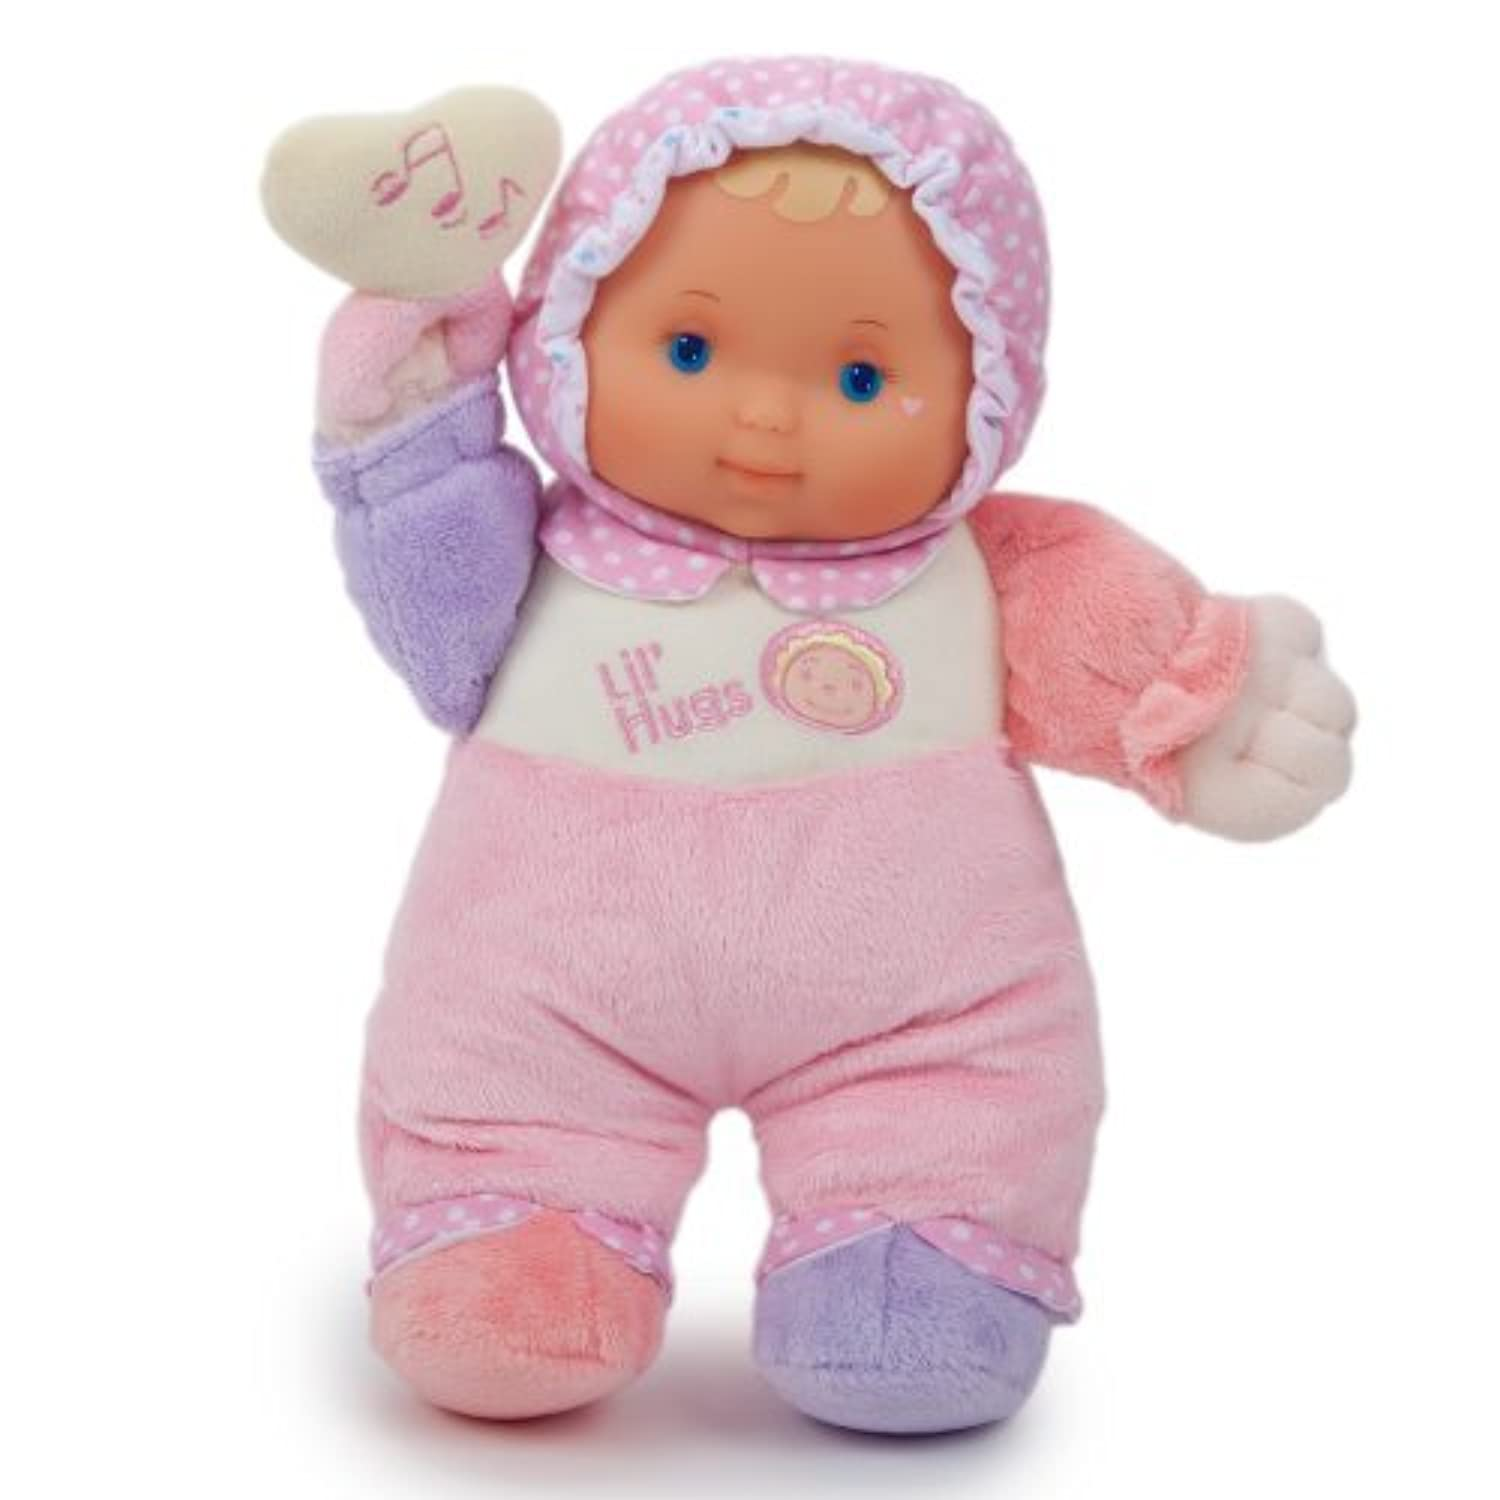 JC Toys Lil' Hugs Pink Soft Body - Your First Baby Doll - Designed by Berenguer - Ages 0+ by JC Toys